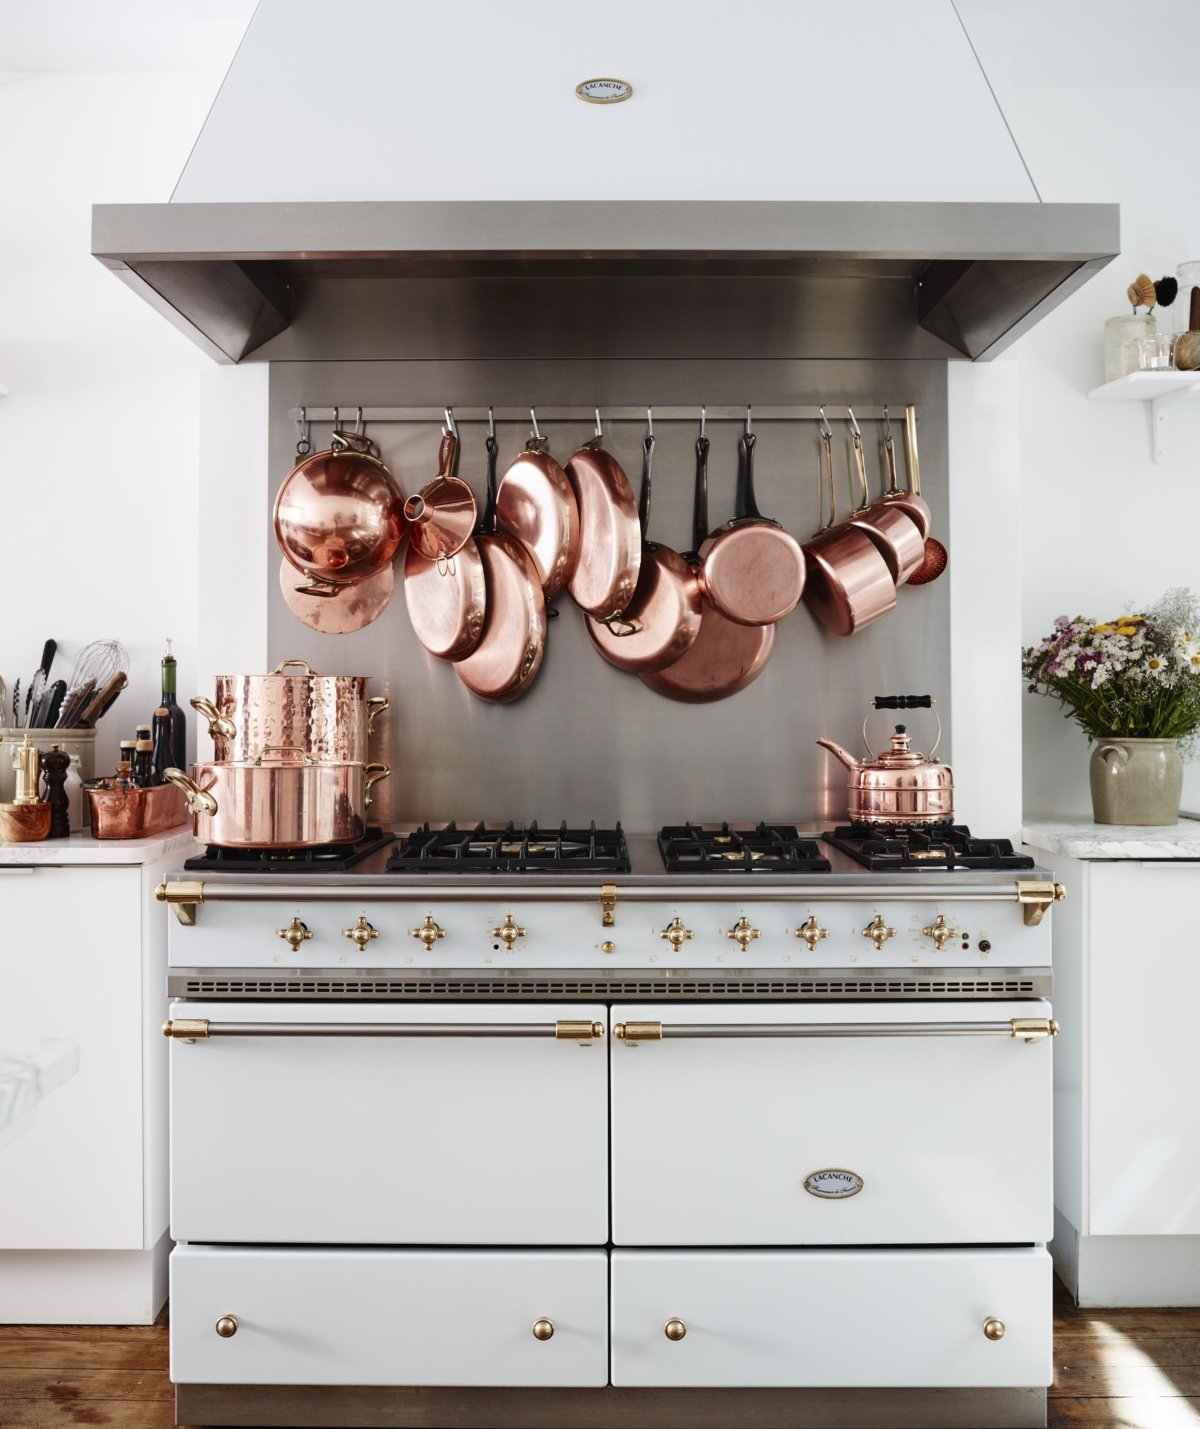 This Is the Trendiest Oven of the Year